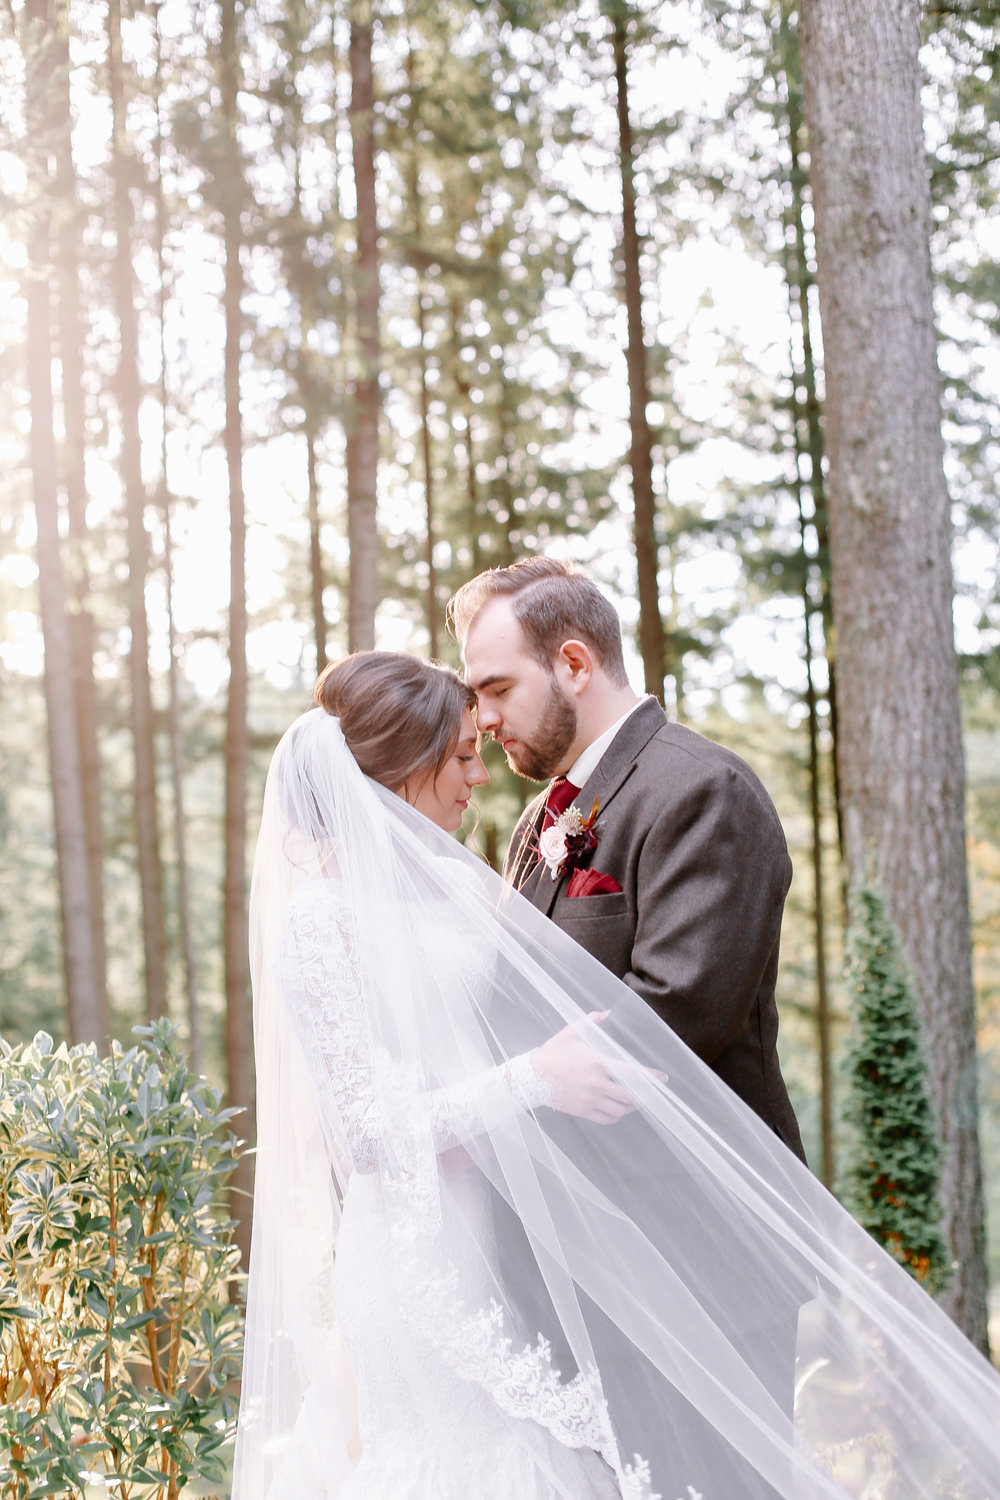 Manu and Laura - Portland Wedding Photographer - 28.jpg